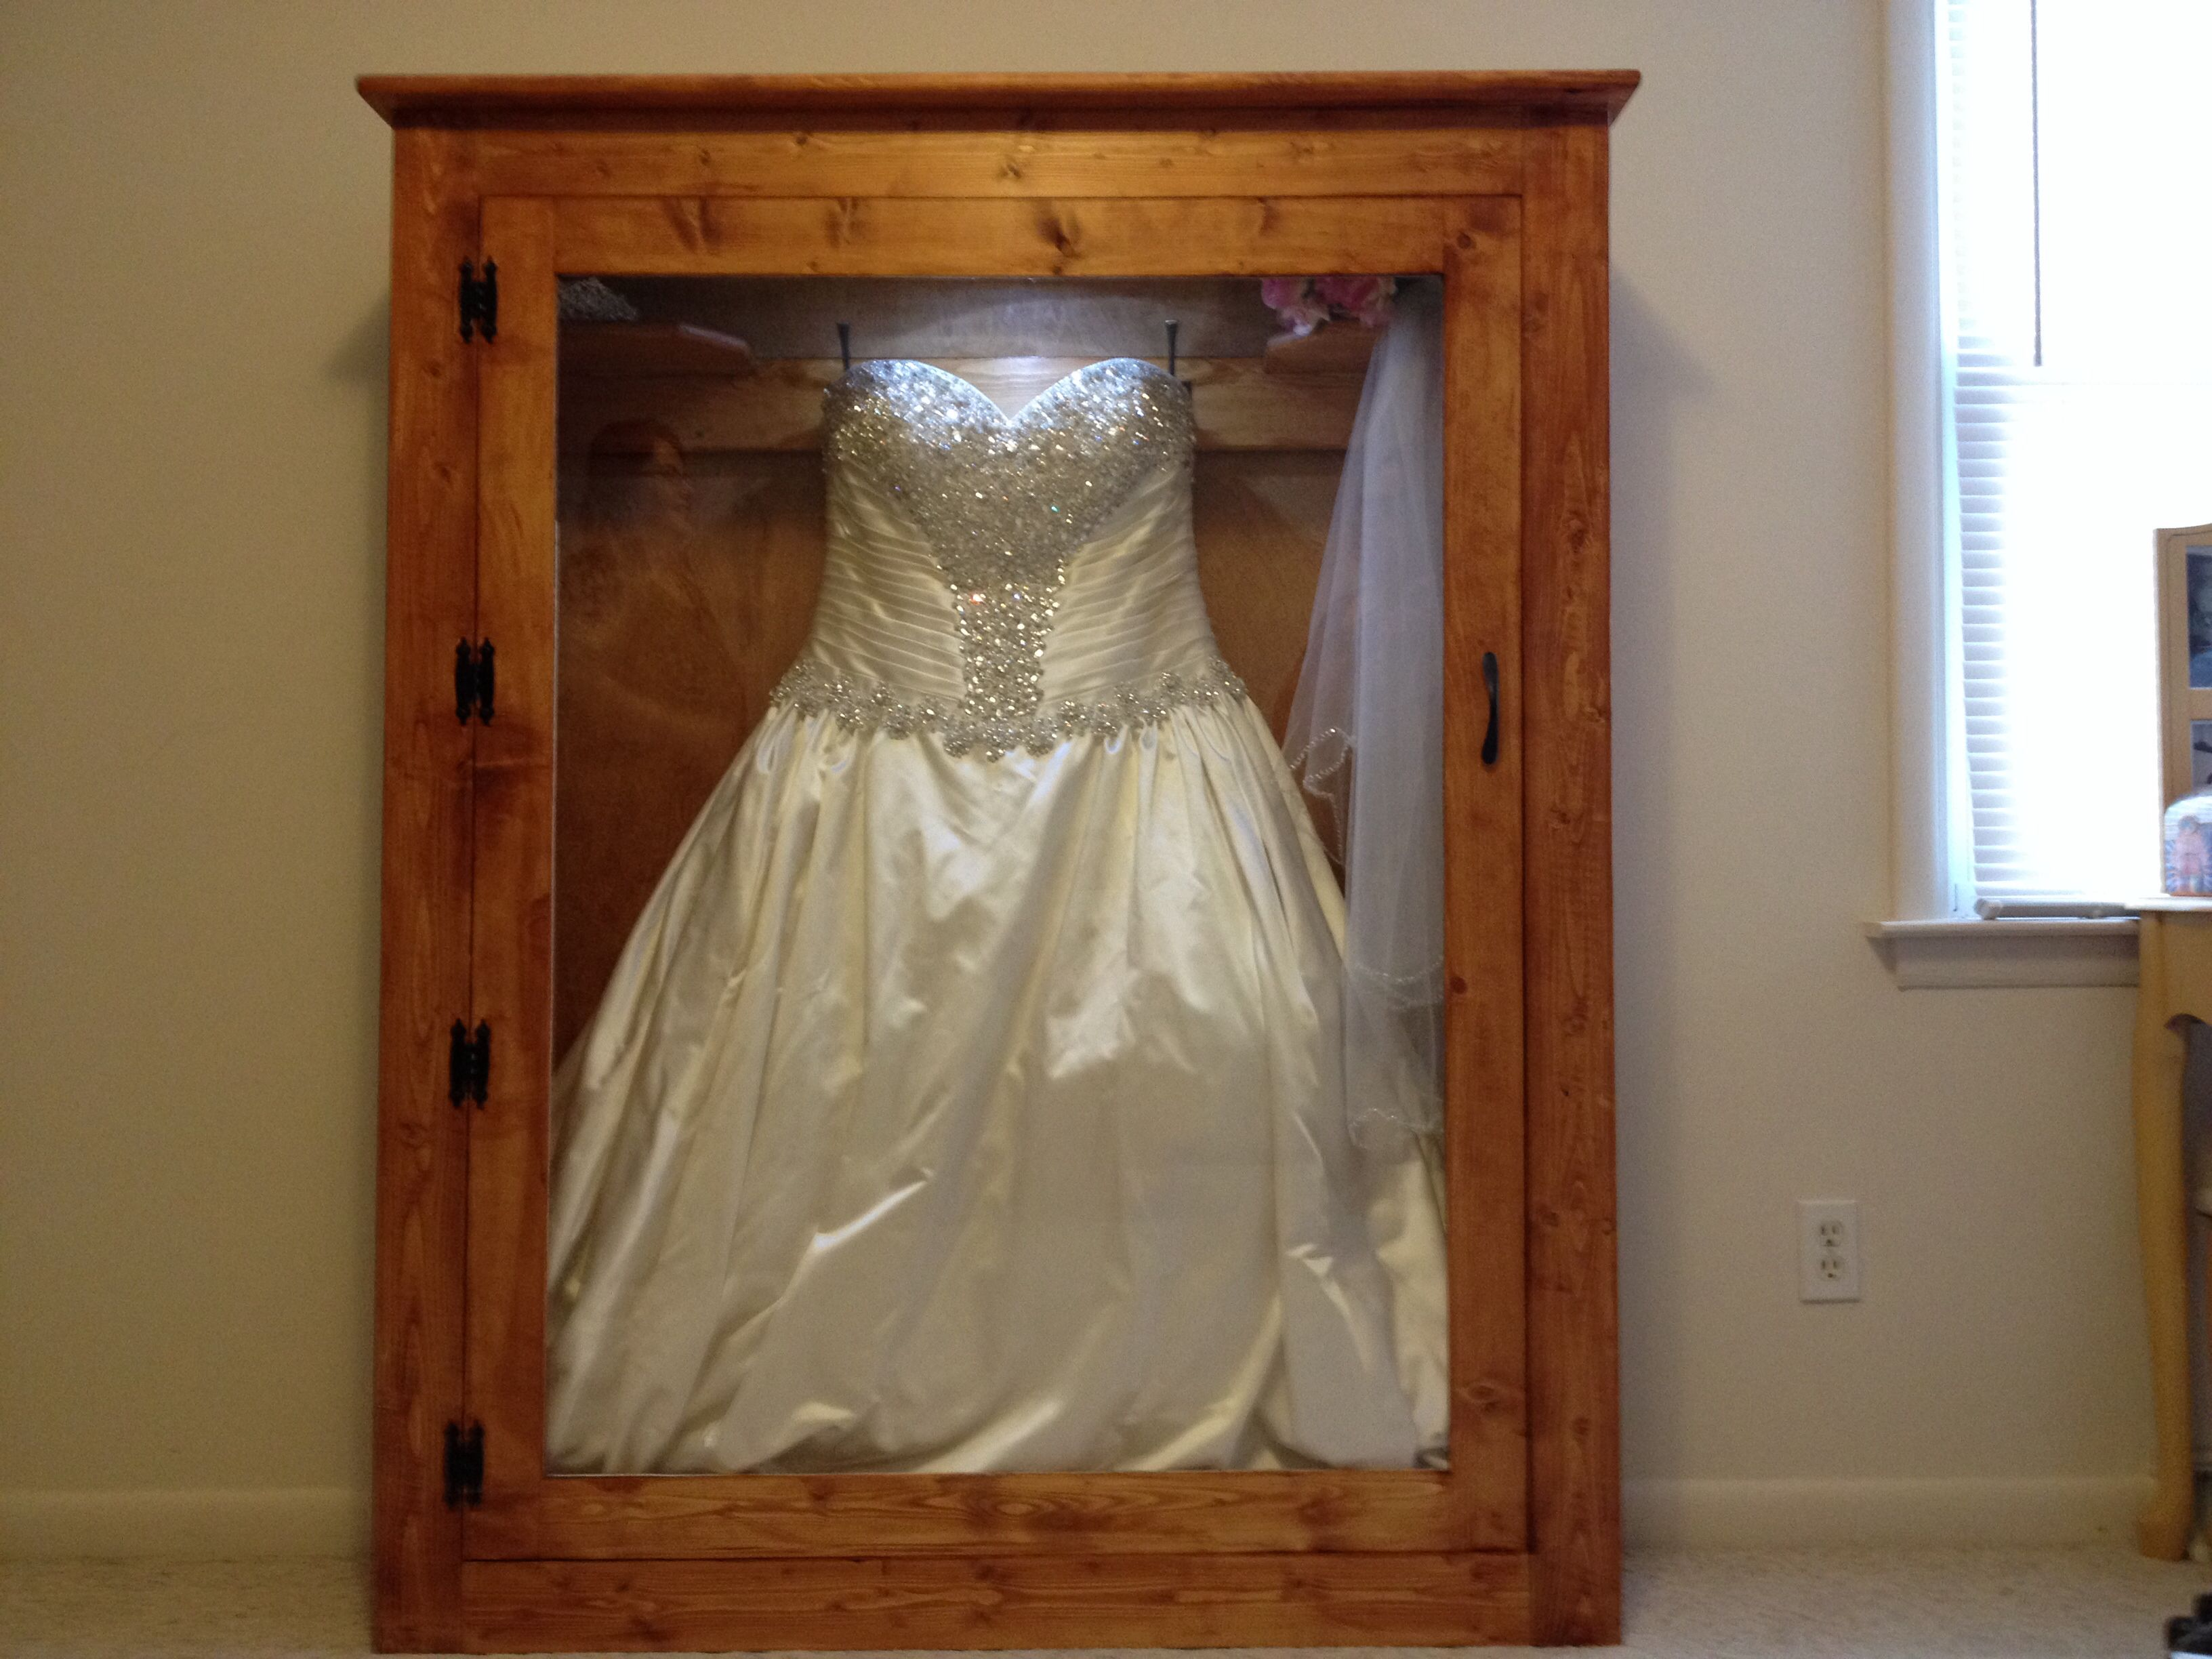 Best Christmas Gift Ever My Husband Made Me A Shadow Box For My Wedding  Dress:) So In Love